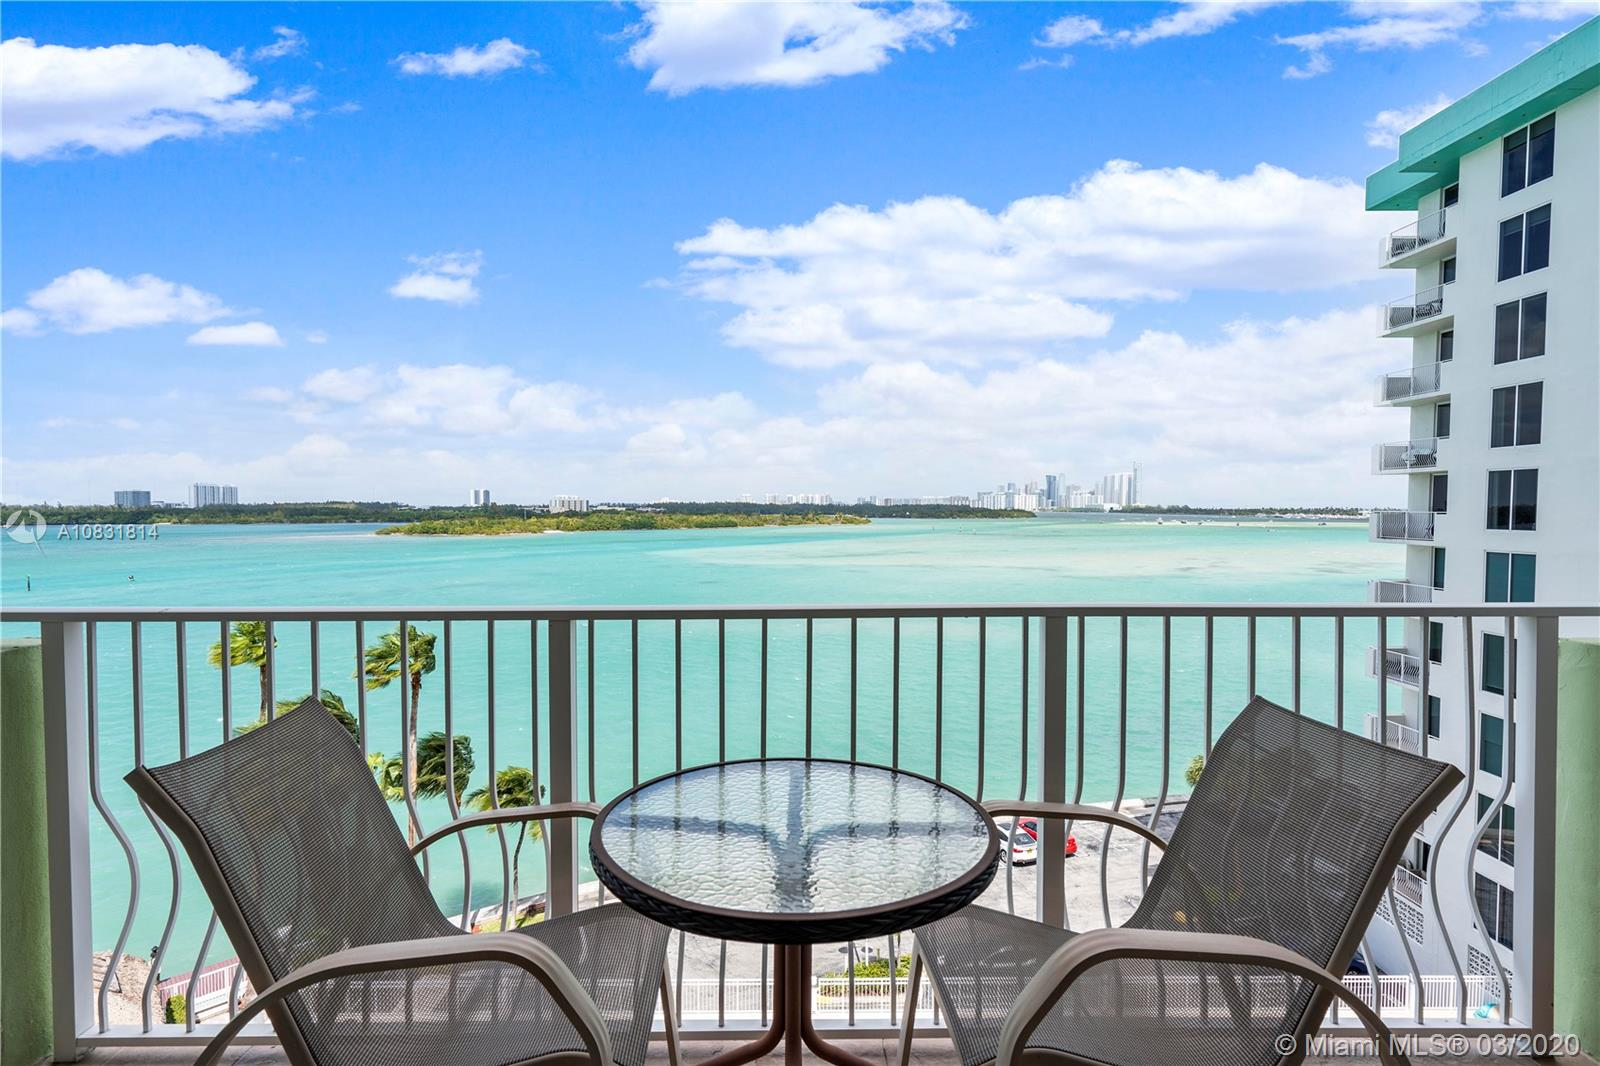 Rare Opportunity to own this double unit with DIRECT VIEWS of Biscayne Bay from every room! 1,900 sqft w/ two separate balconies. Spacious master bedroom with oversized walk in master closet. Master bedroom has private balcony. Large kitchen with granite counter tops & tons of cabinet space. Tile throughout. Washer & dryer in unit. Unit comes with 2 parking spaces as well as 2 AC'd storage units. Impact windows. Building has lots of amenities: Heated pool, large gym, media room, tiki huts & gas grills, 24 hour front desk attendant and on-site management. Boat slips available for rent through association. Gated property. Common areas remodeled in 2018. Premium cable & internet included in HOA. Cooling tower & chiller system for air conditioning,  electric bills are lower. Walk to A+ school